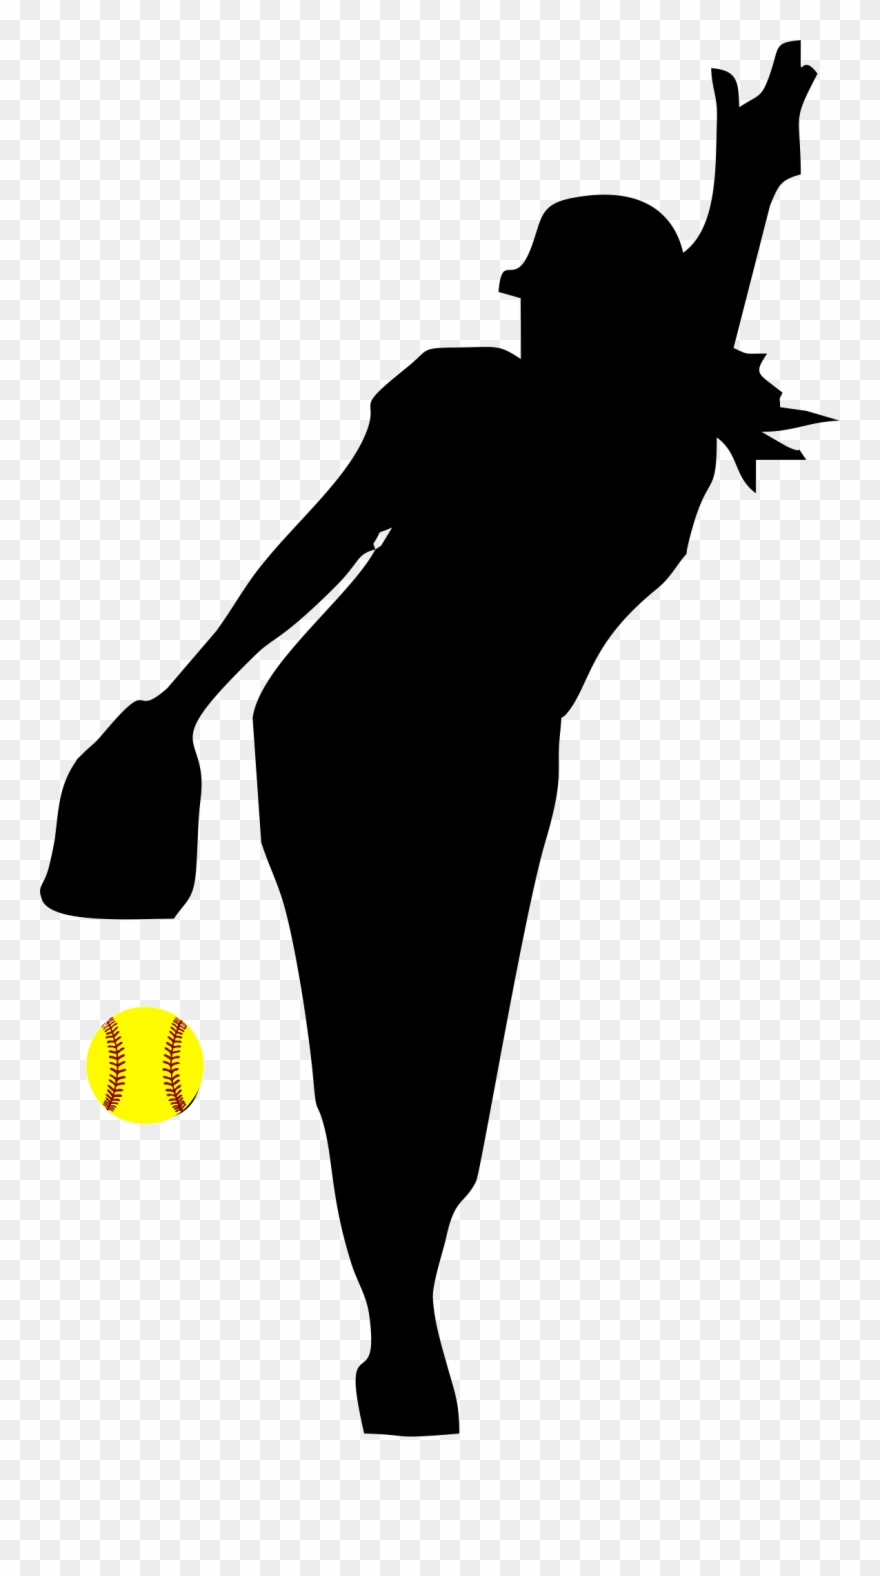 Fastpitch clipart clipart black and white Softball Fastpitch Clip Art Transparent Background - Png Download ... clipart black and white